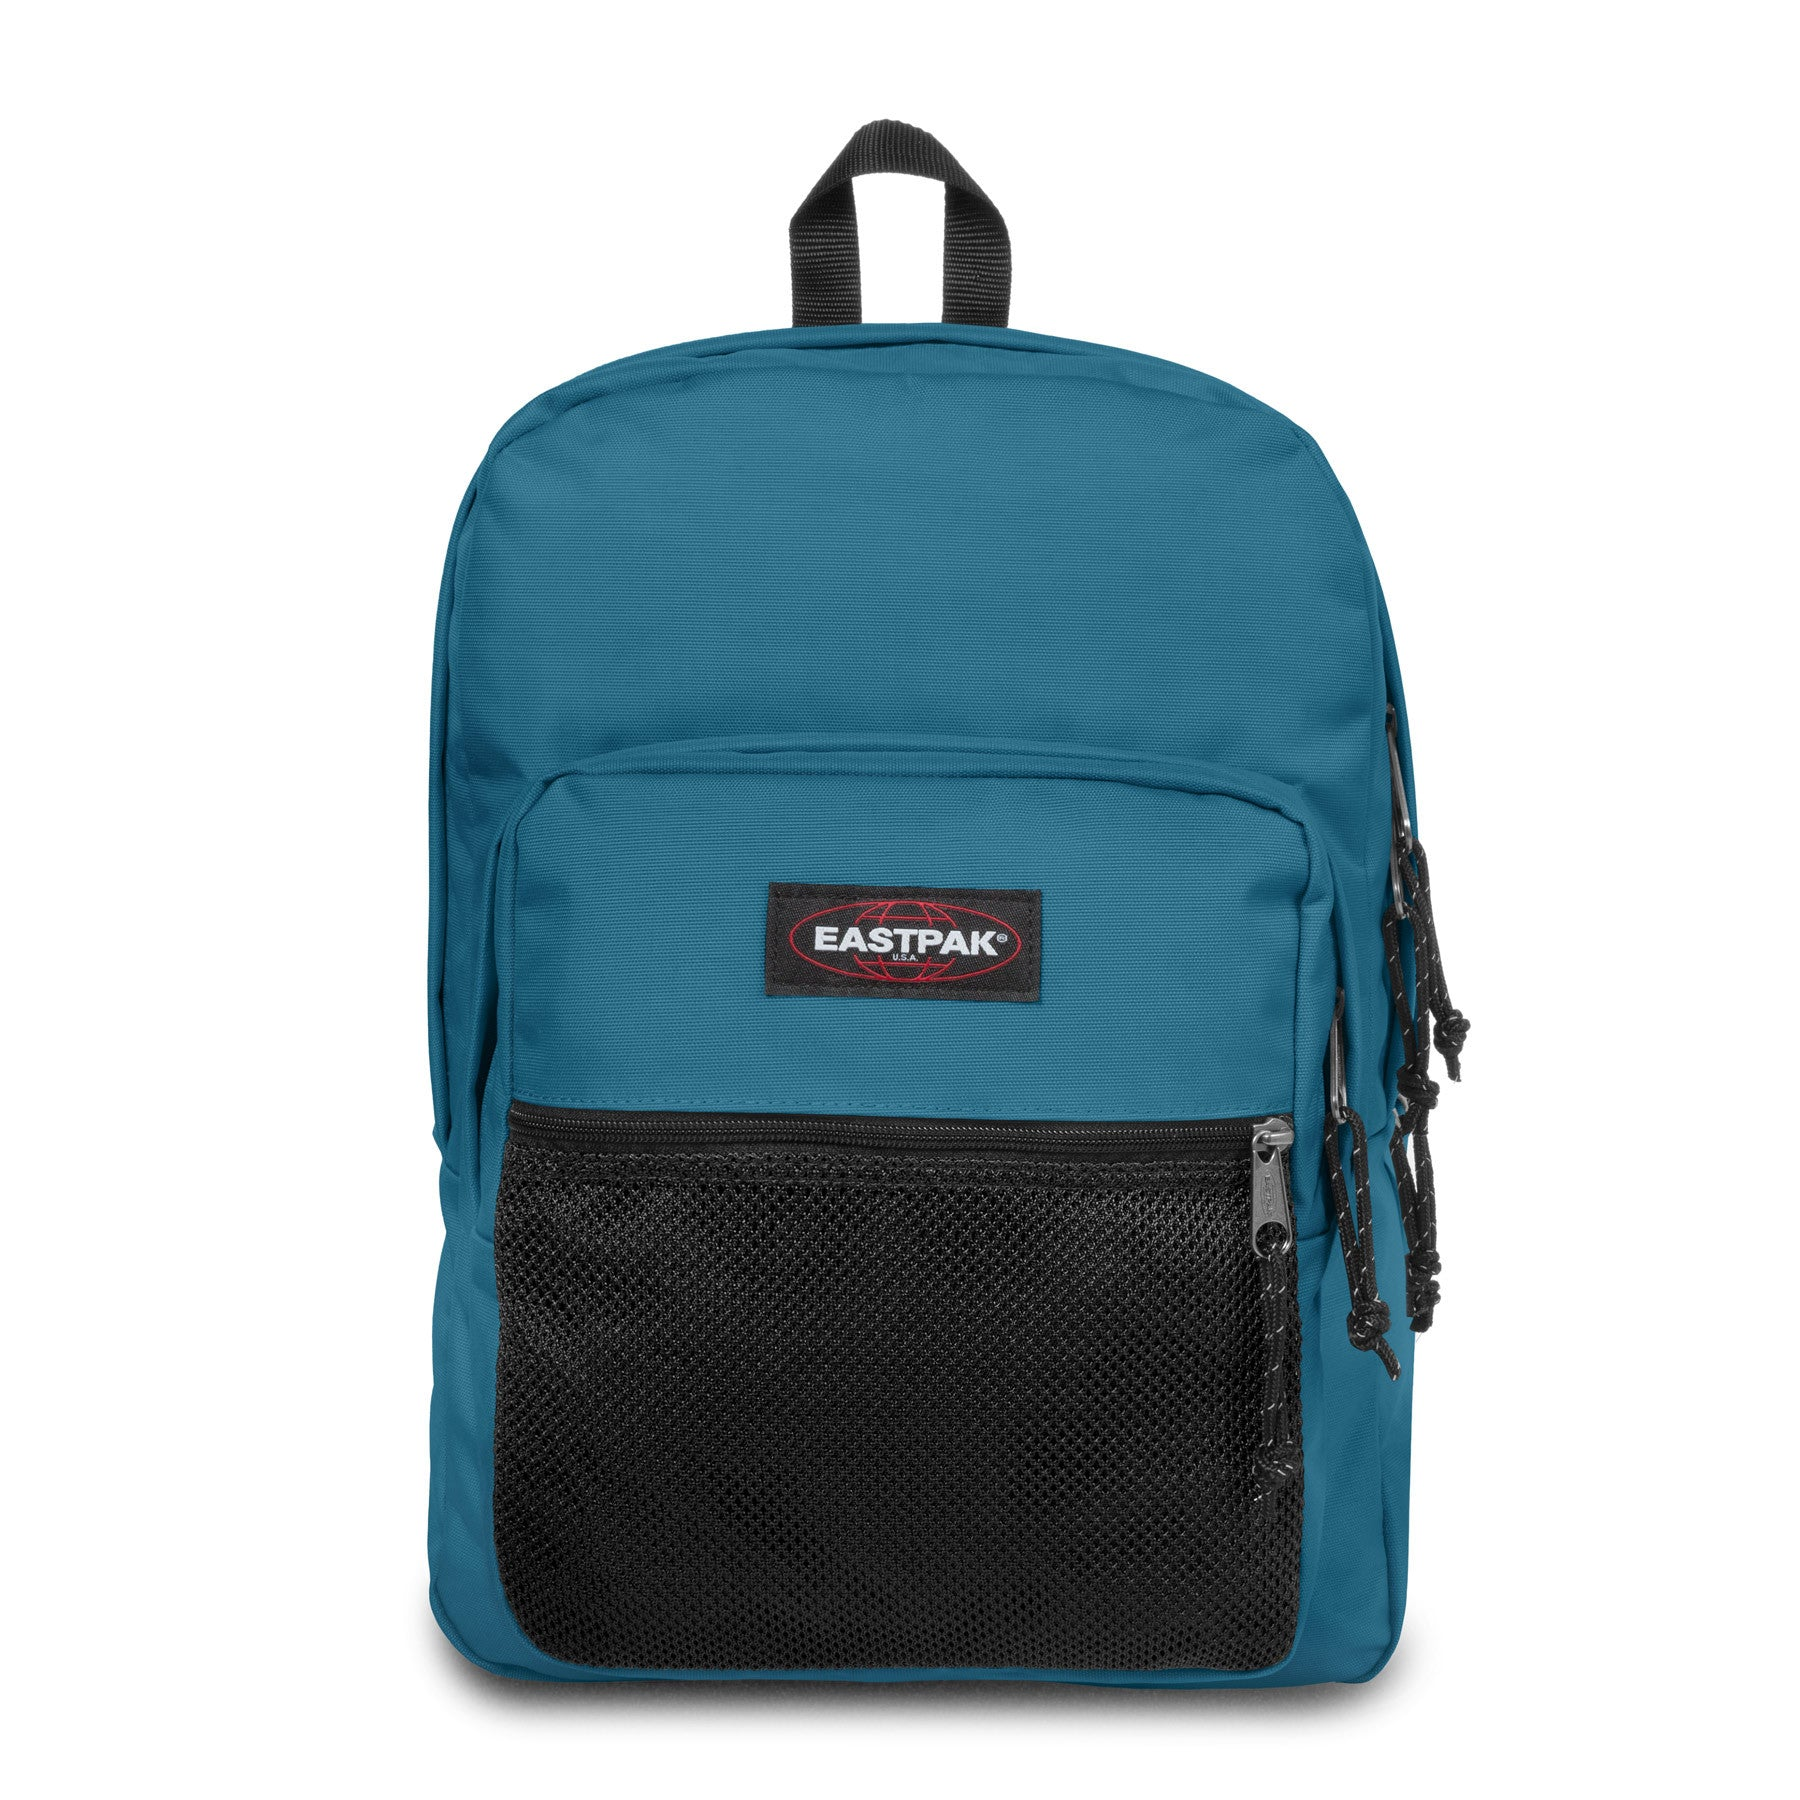 Zaino Pinnacle horizon blue